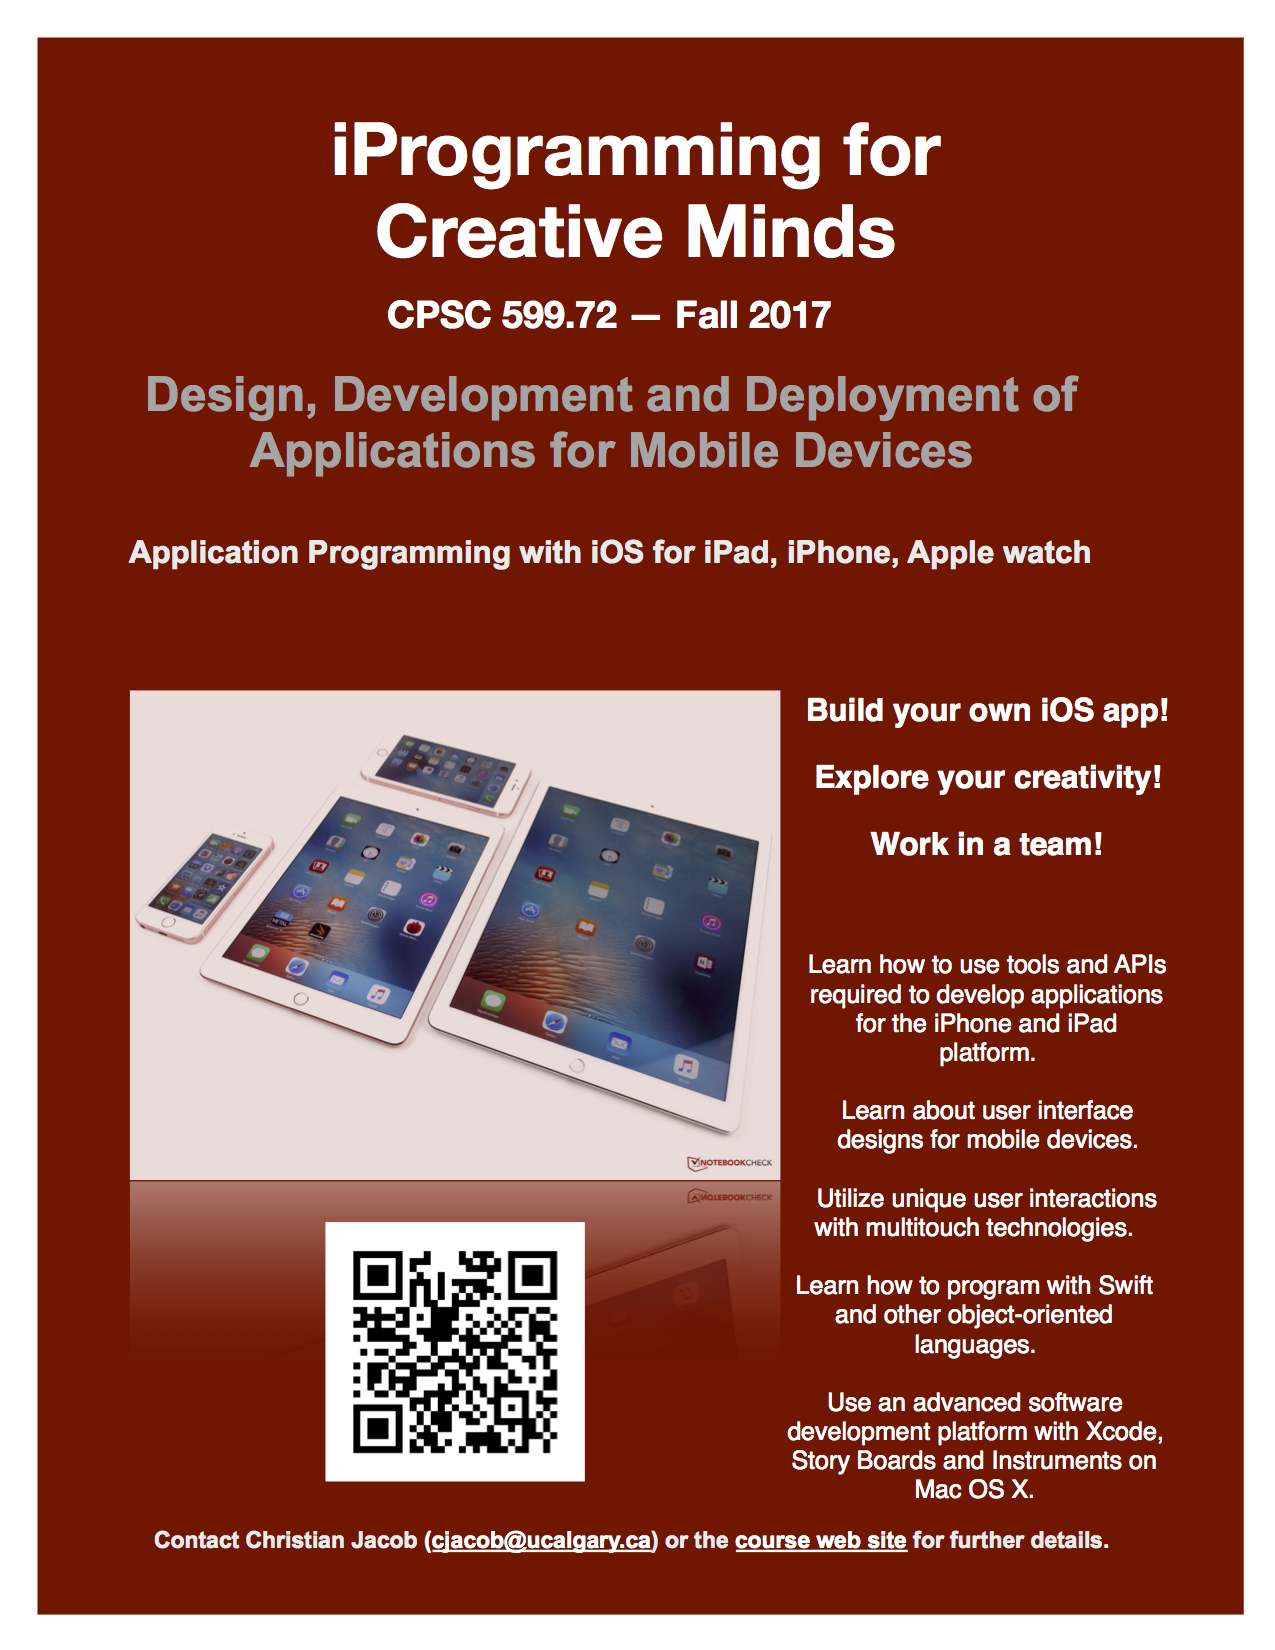 iProgramming for Creative Minds